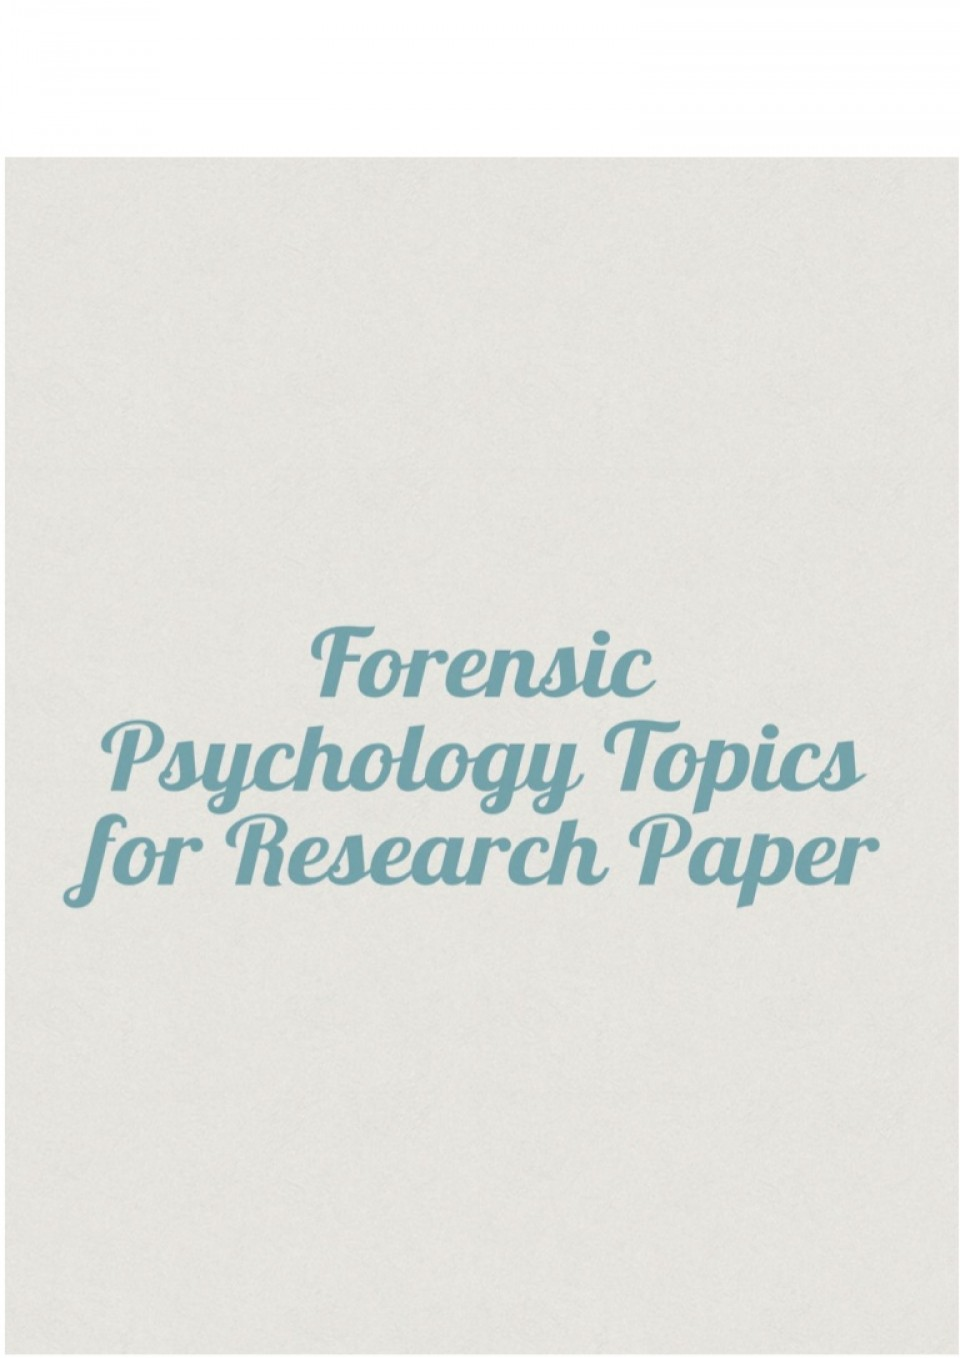 008 Psychology Topics For Research Paper Forensicpsychologytopicsforresearchpaper Thumbnail Wondrous Health Cognitive Papers Potential Developmental 960